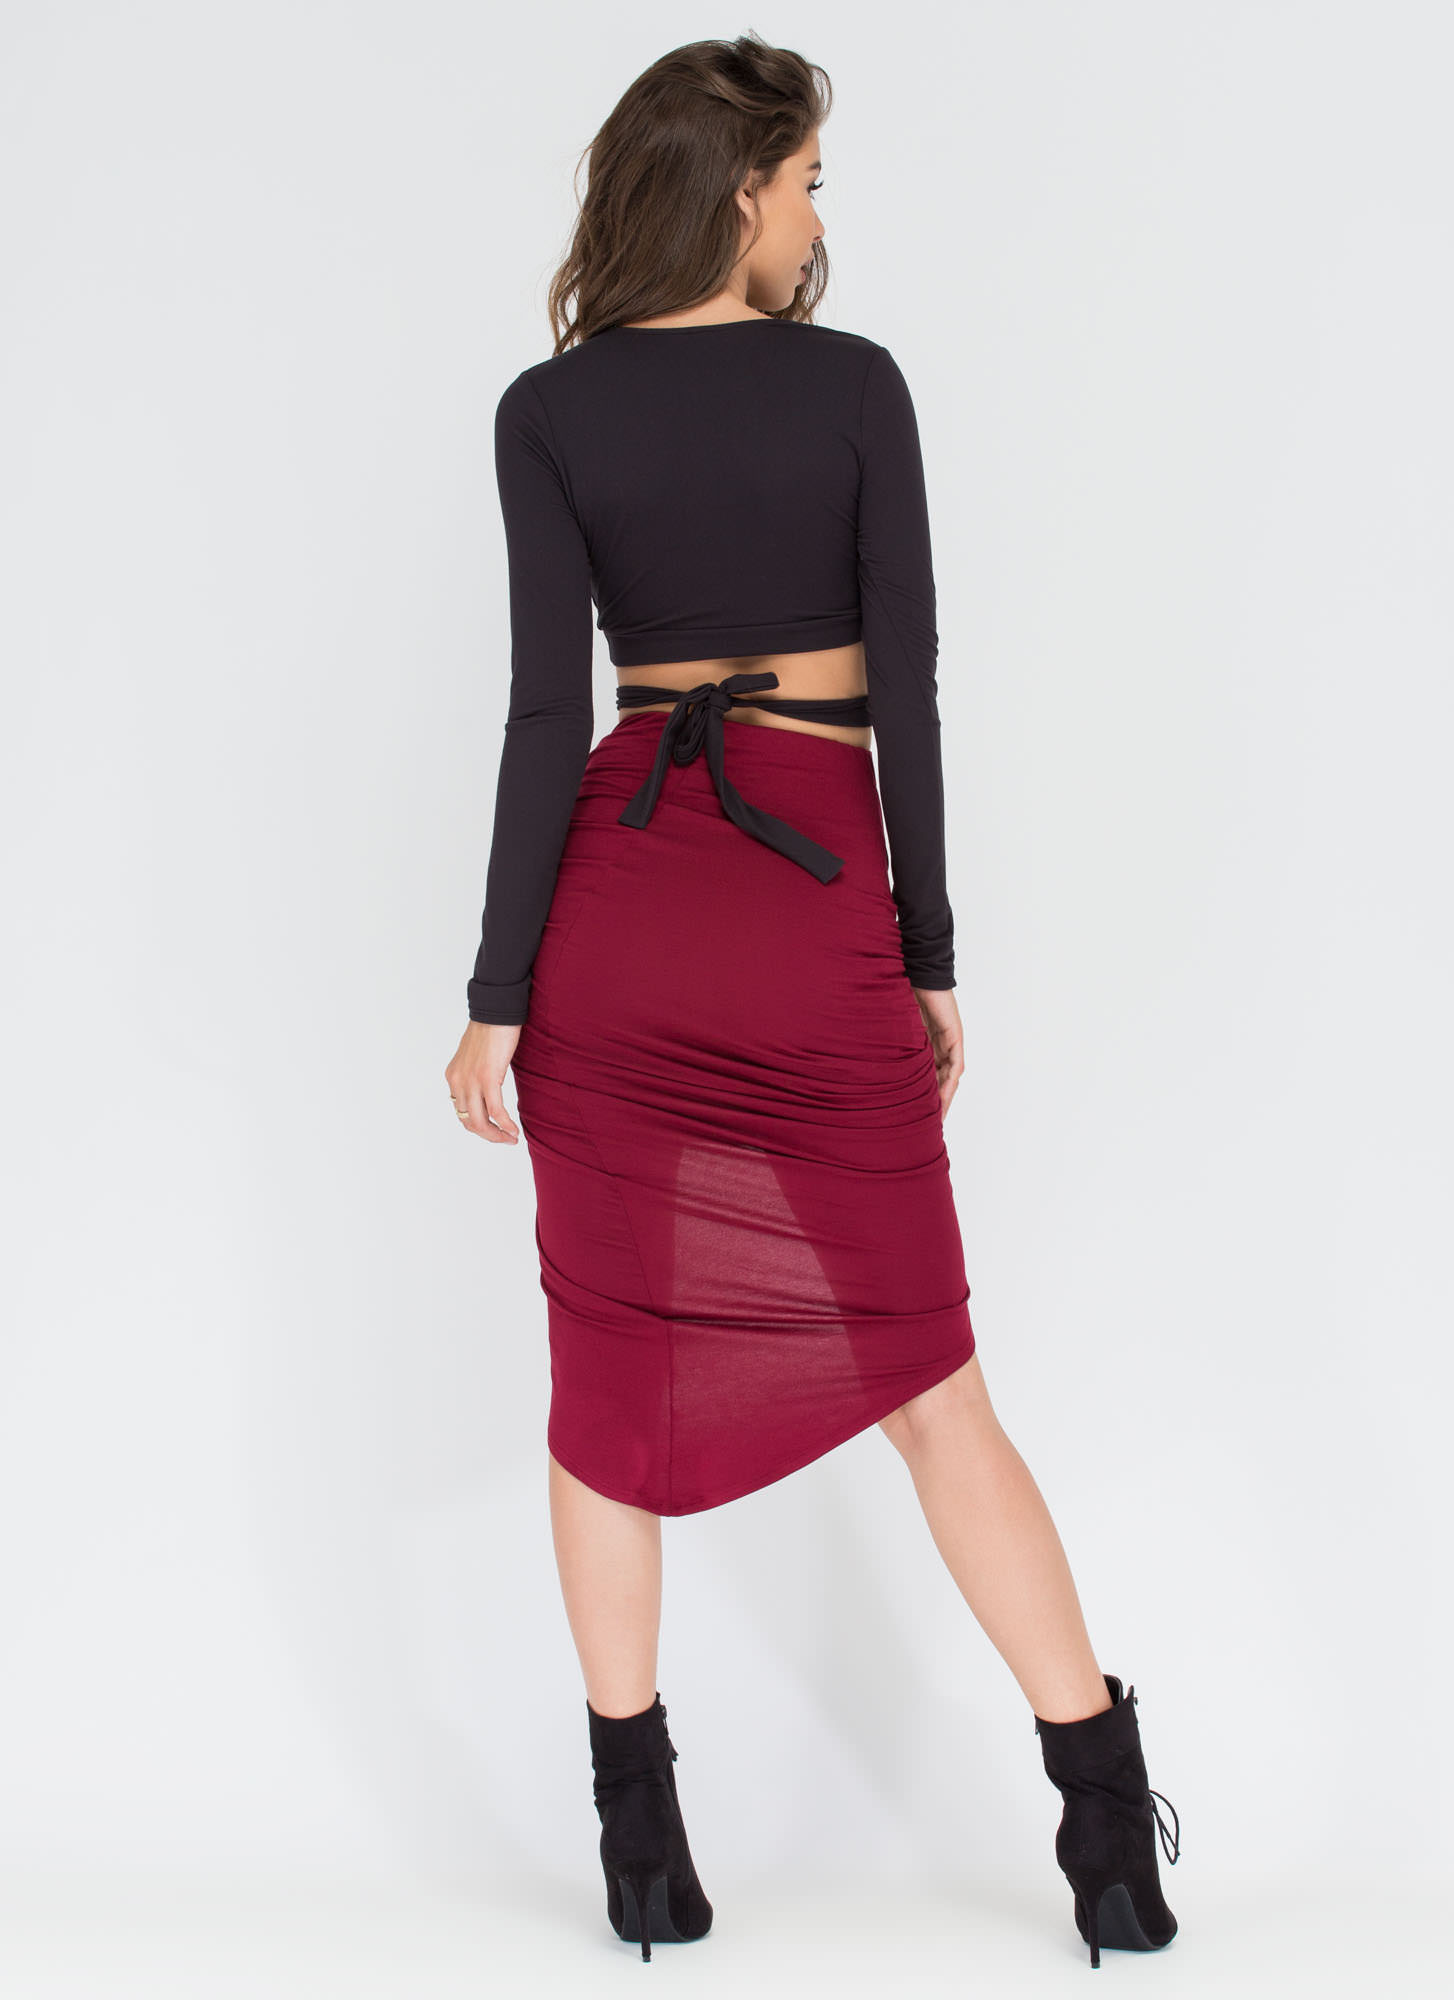 Knotty Girl High-Low Skirt WINE